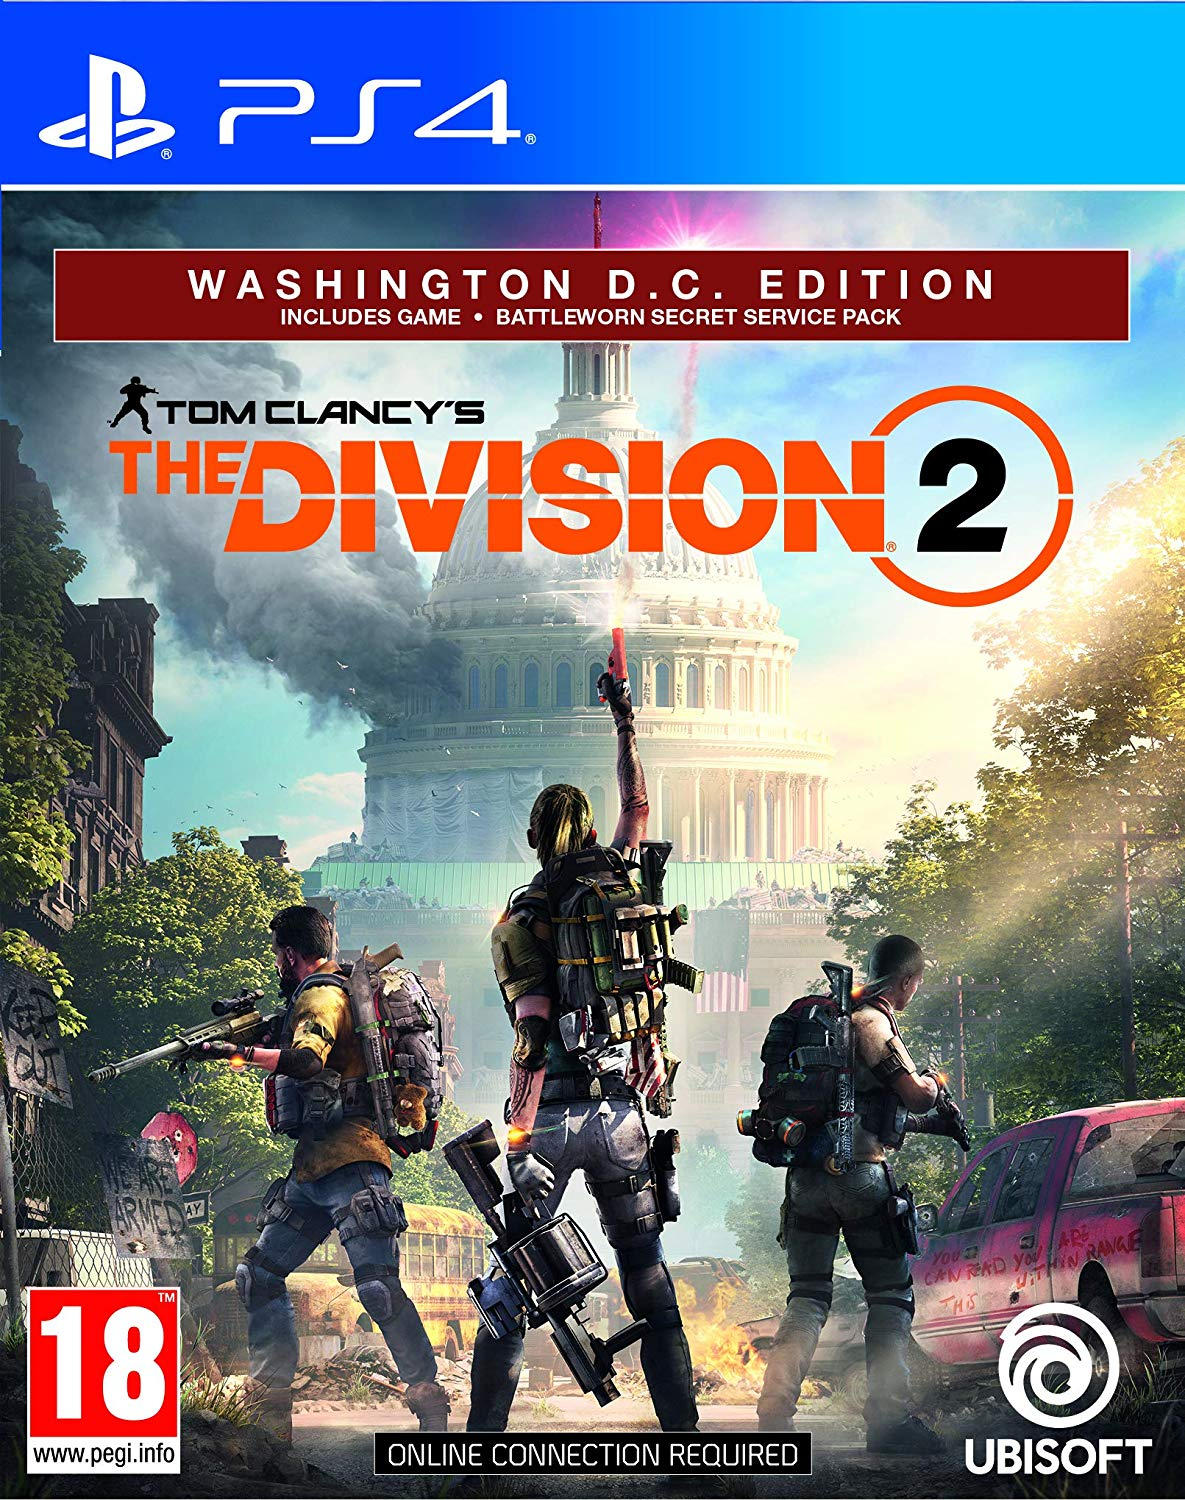 tom-clancy-s-division-2-washington-d-c-edition-game-ps4